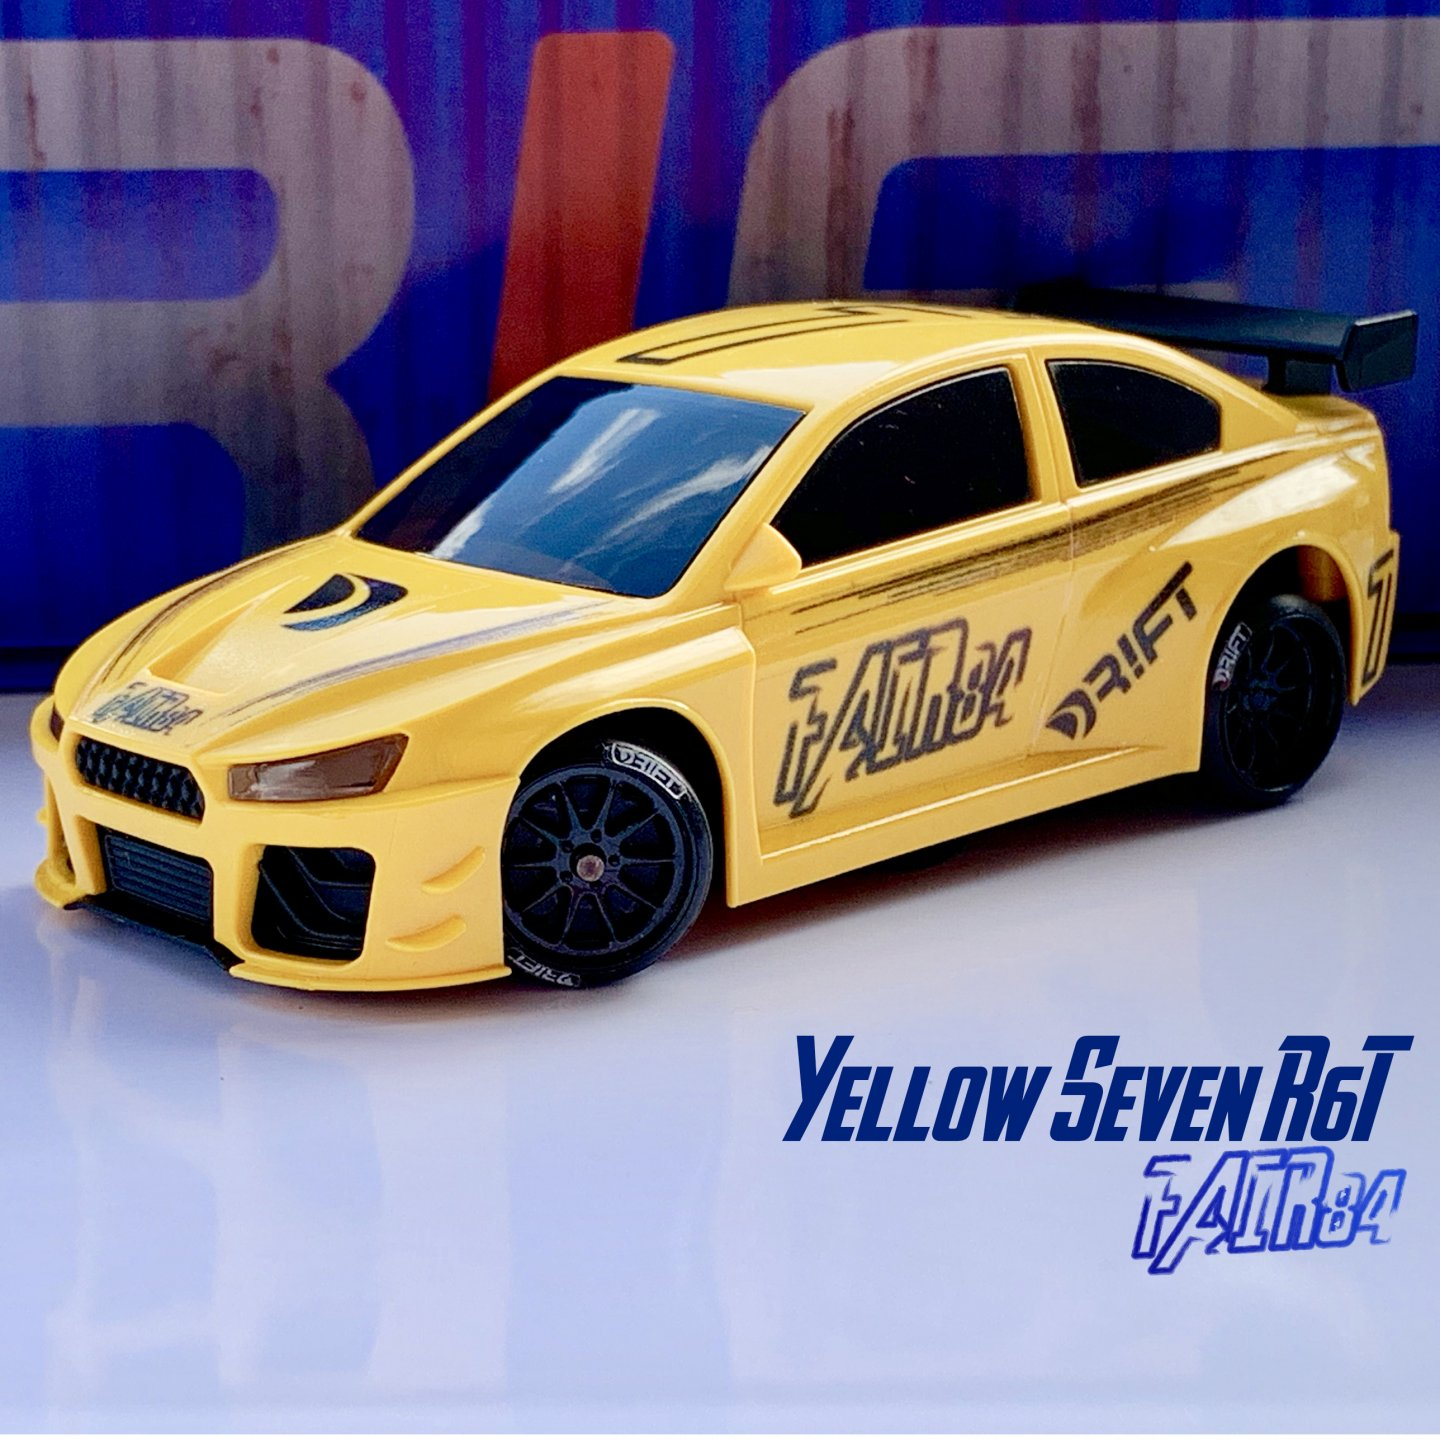 Yellow Seven fair84.jpg